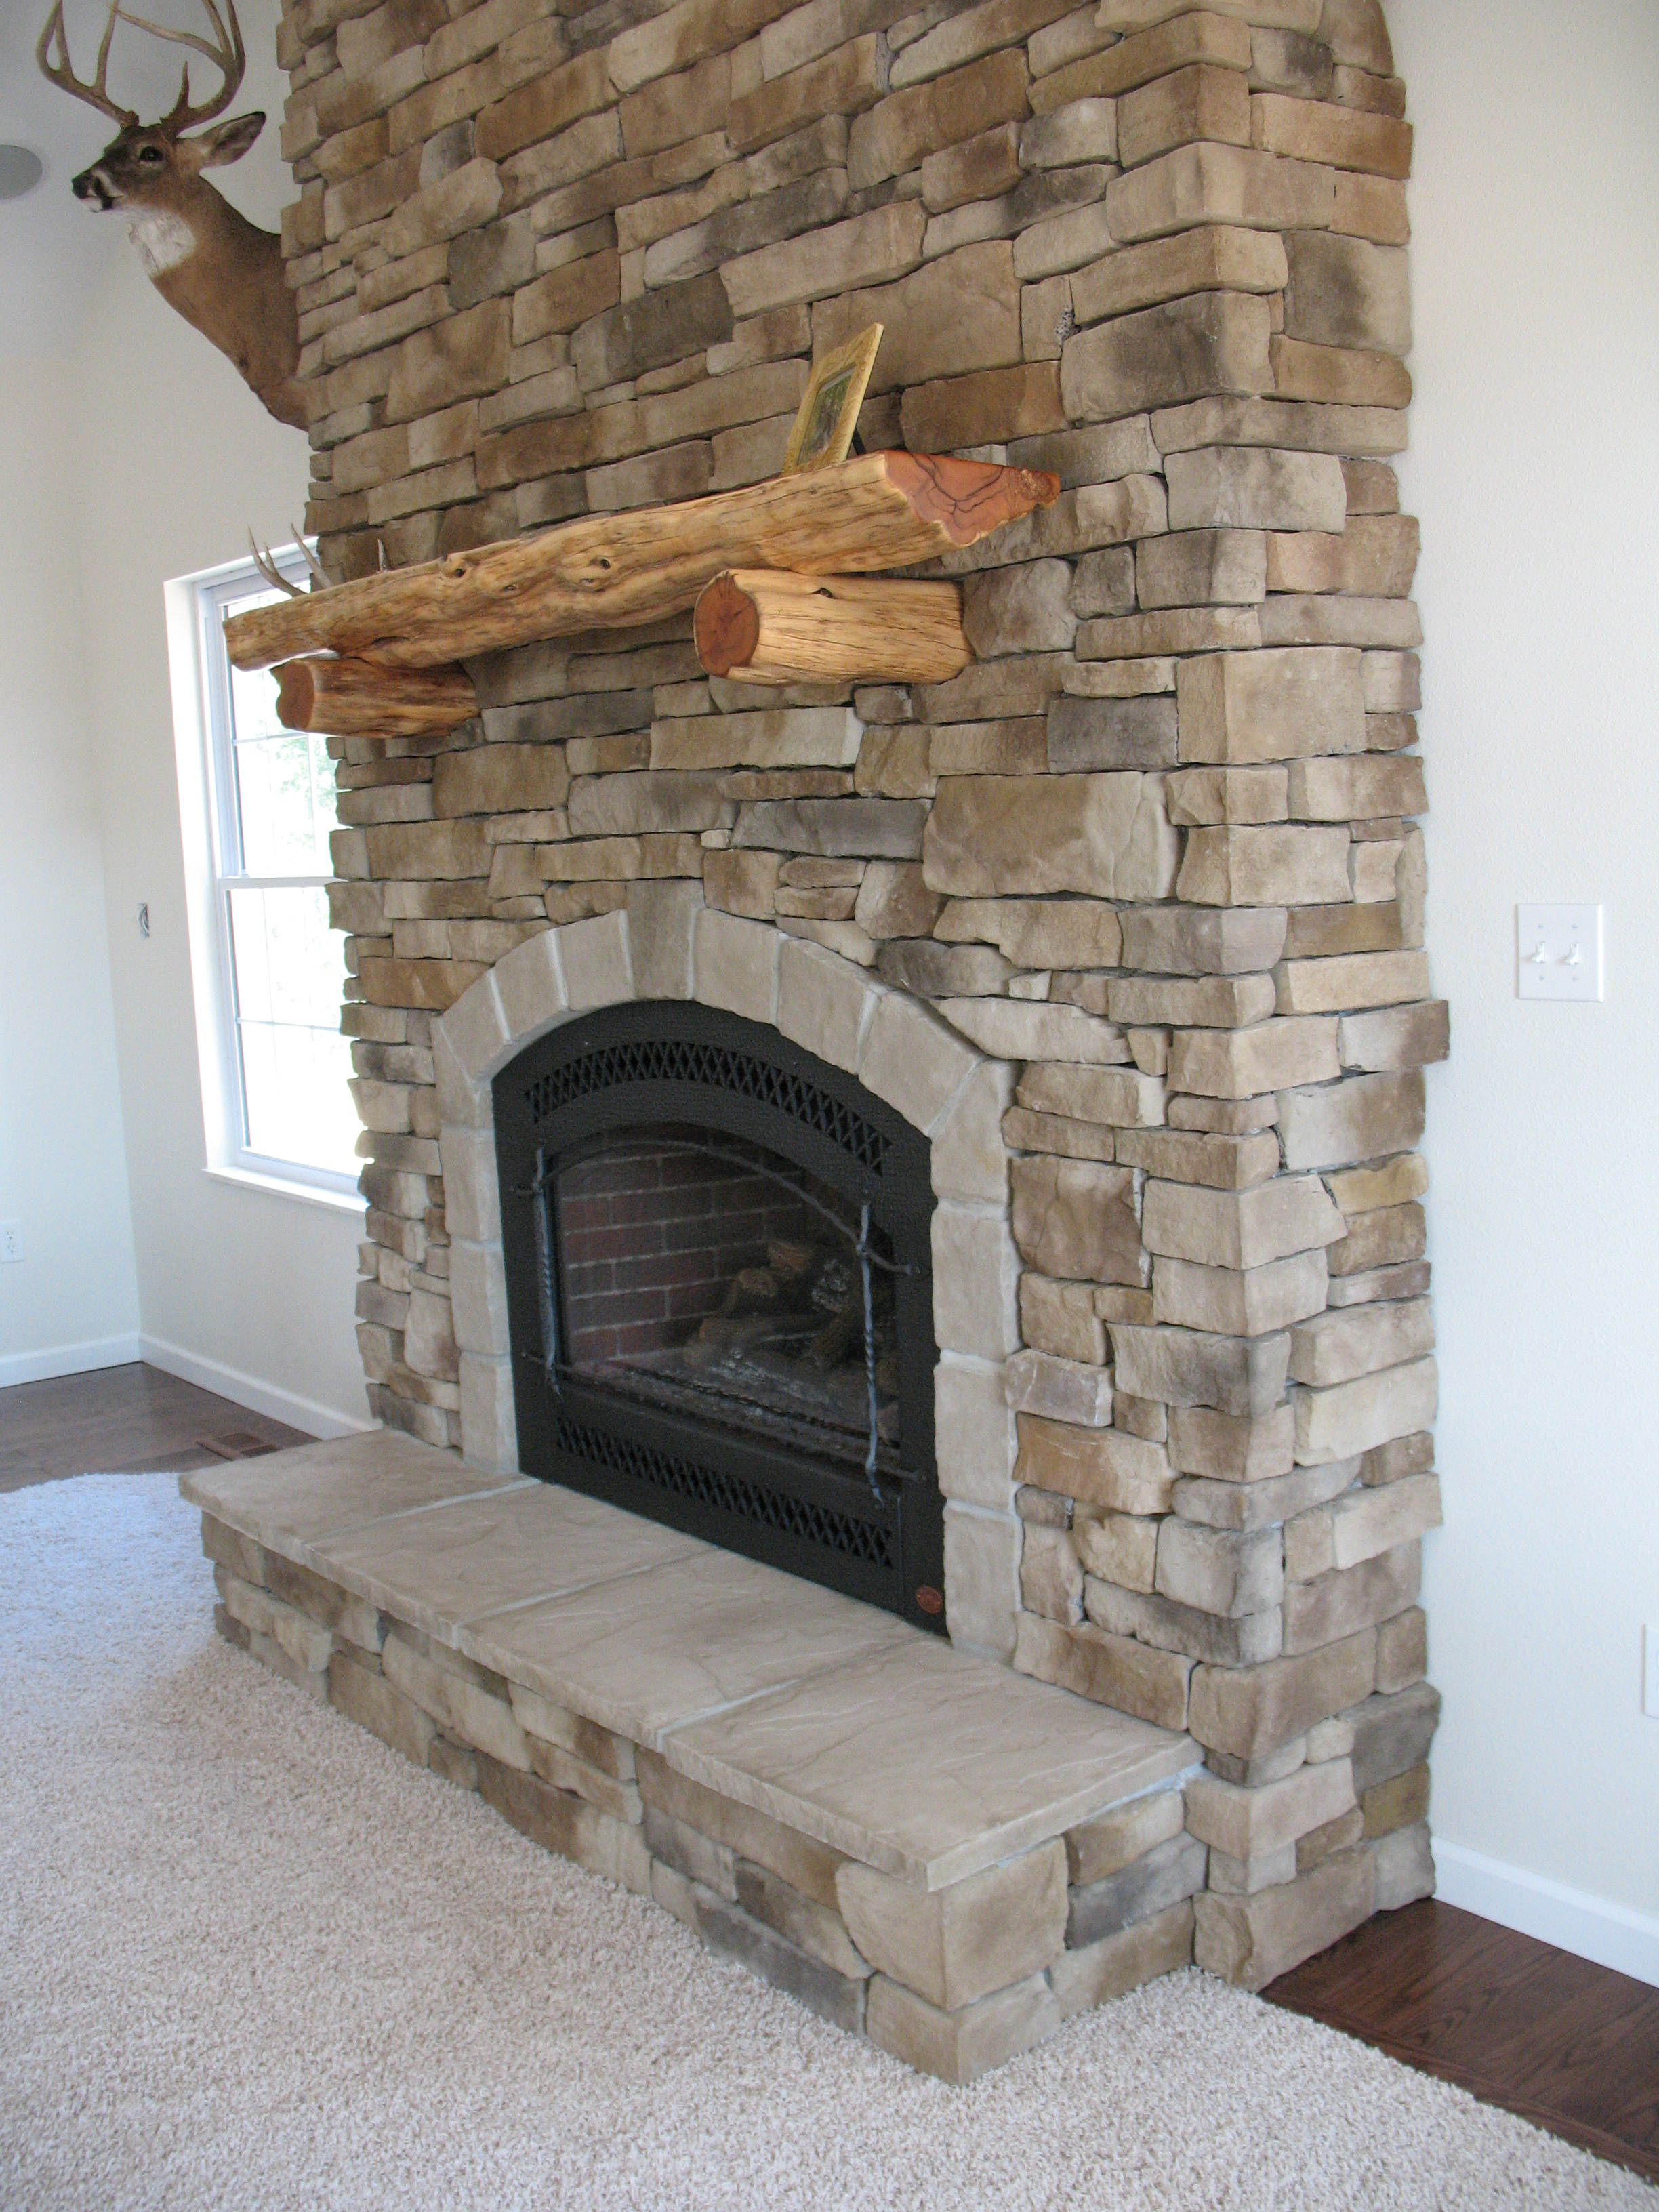 Inside fireplaces  have typically been brick or stone. Fireplaces provide warmth and comfort